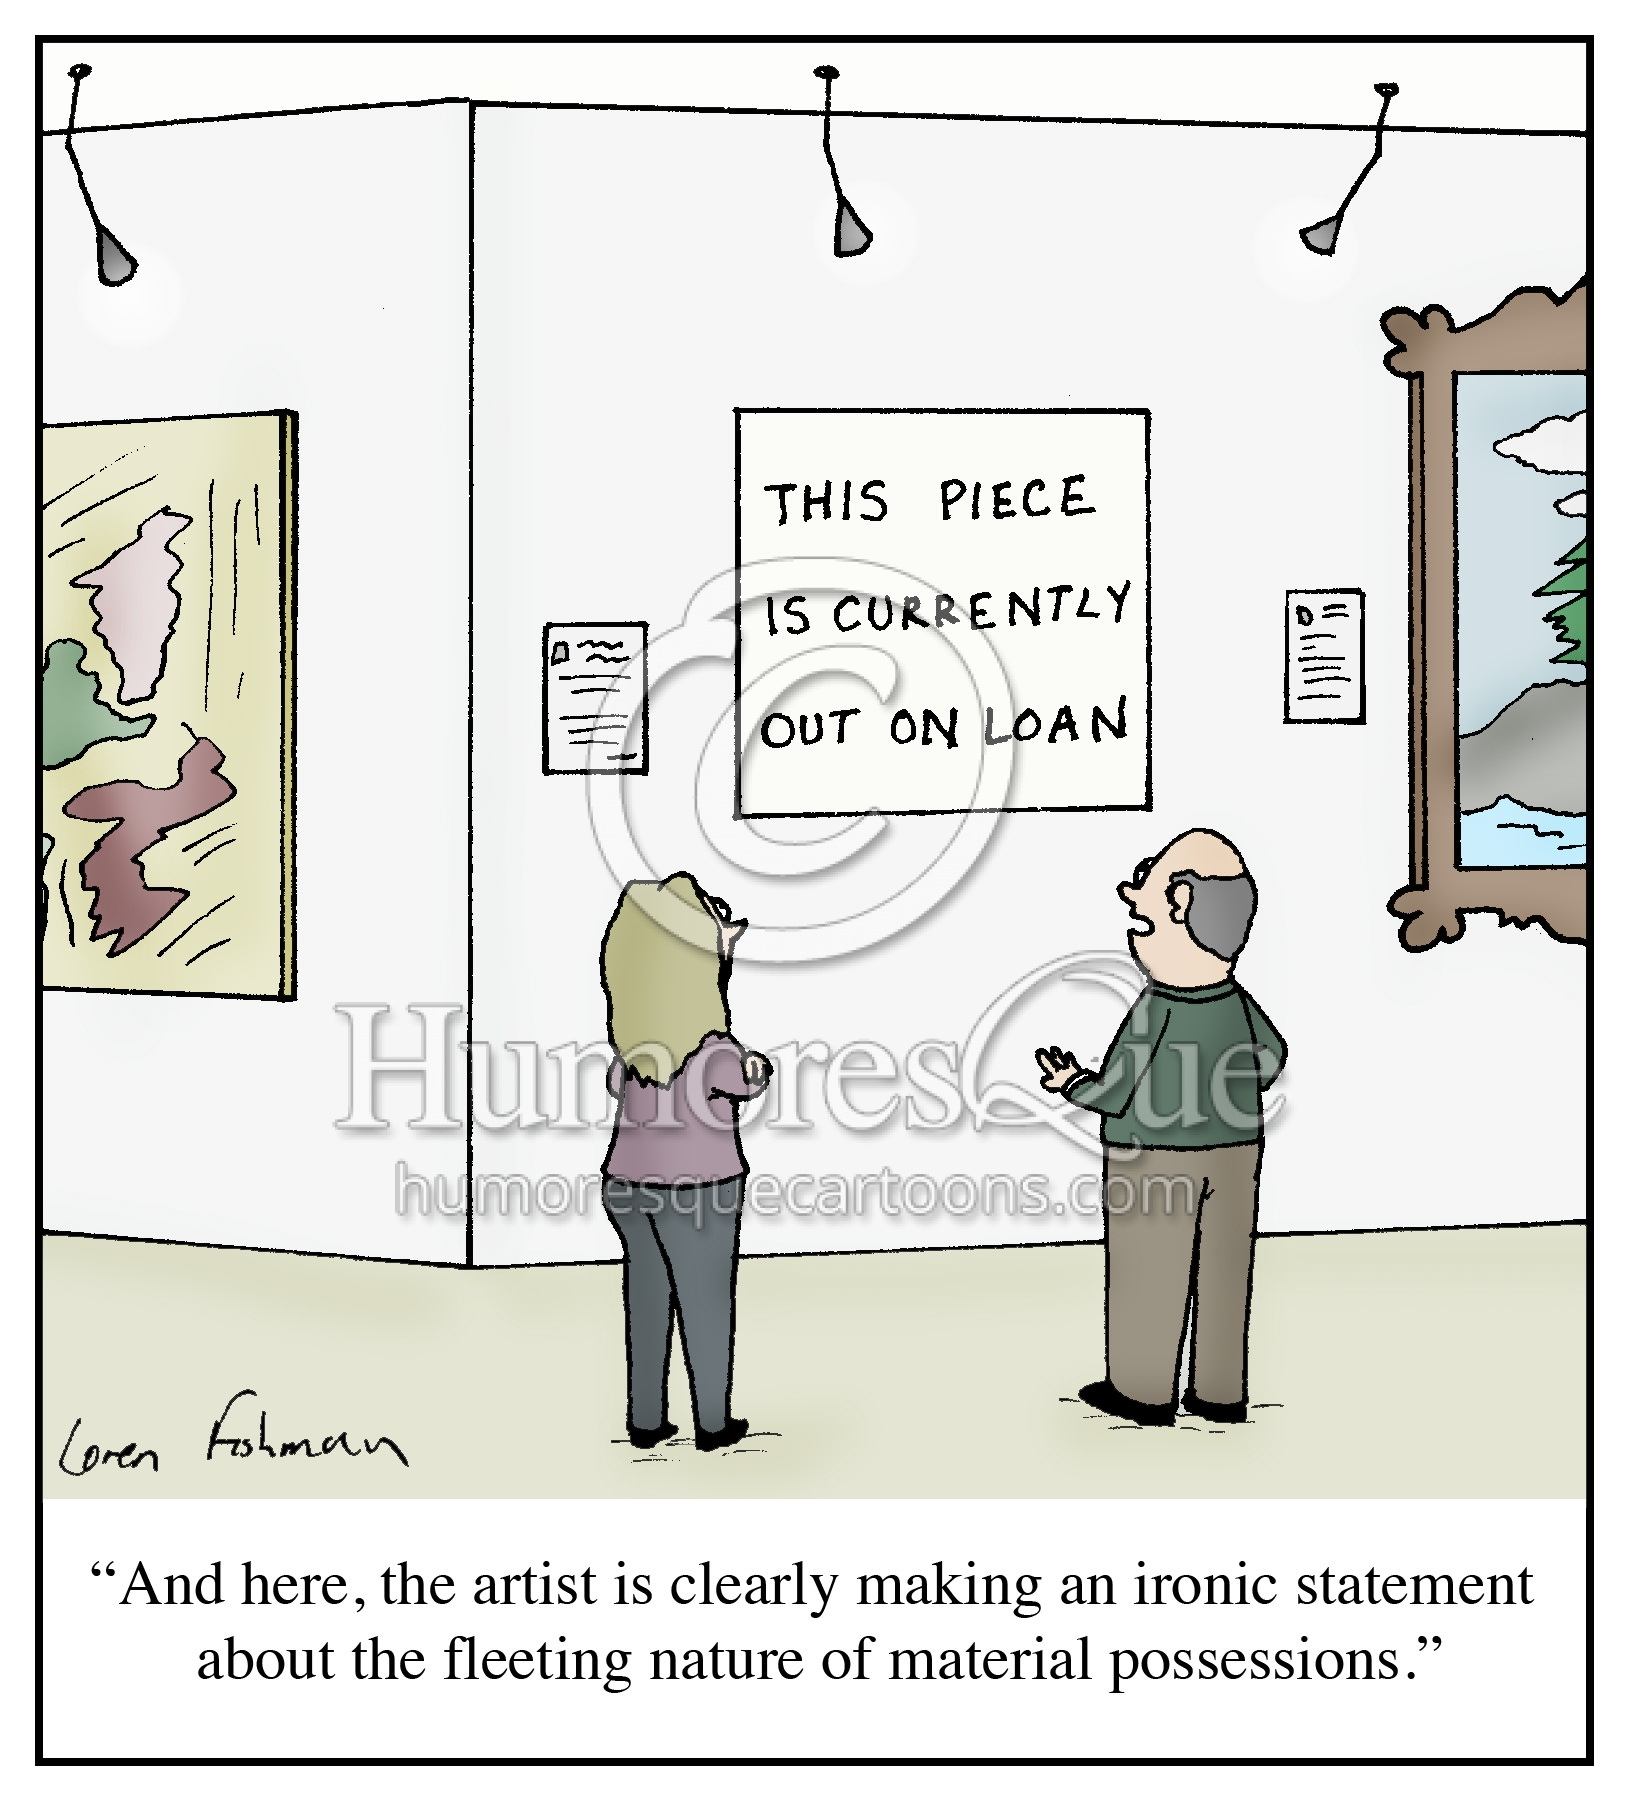 museum piece out on loan modern art critic cartoon